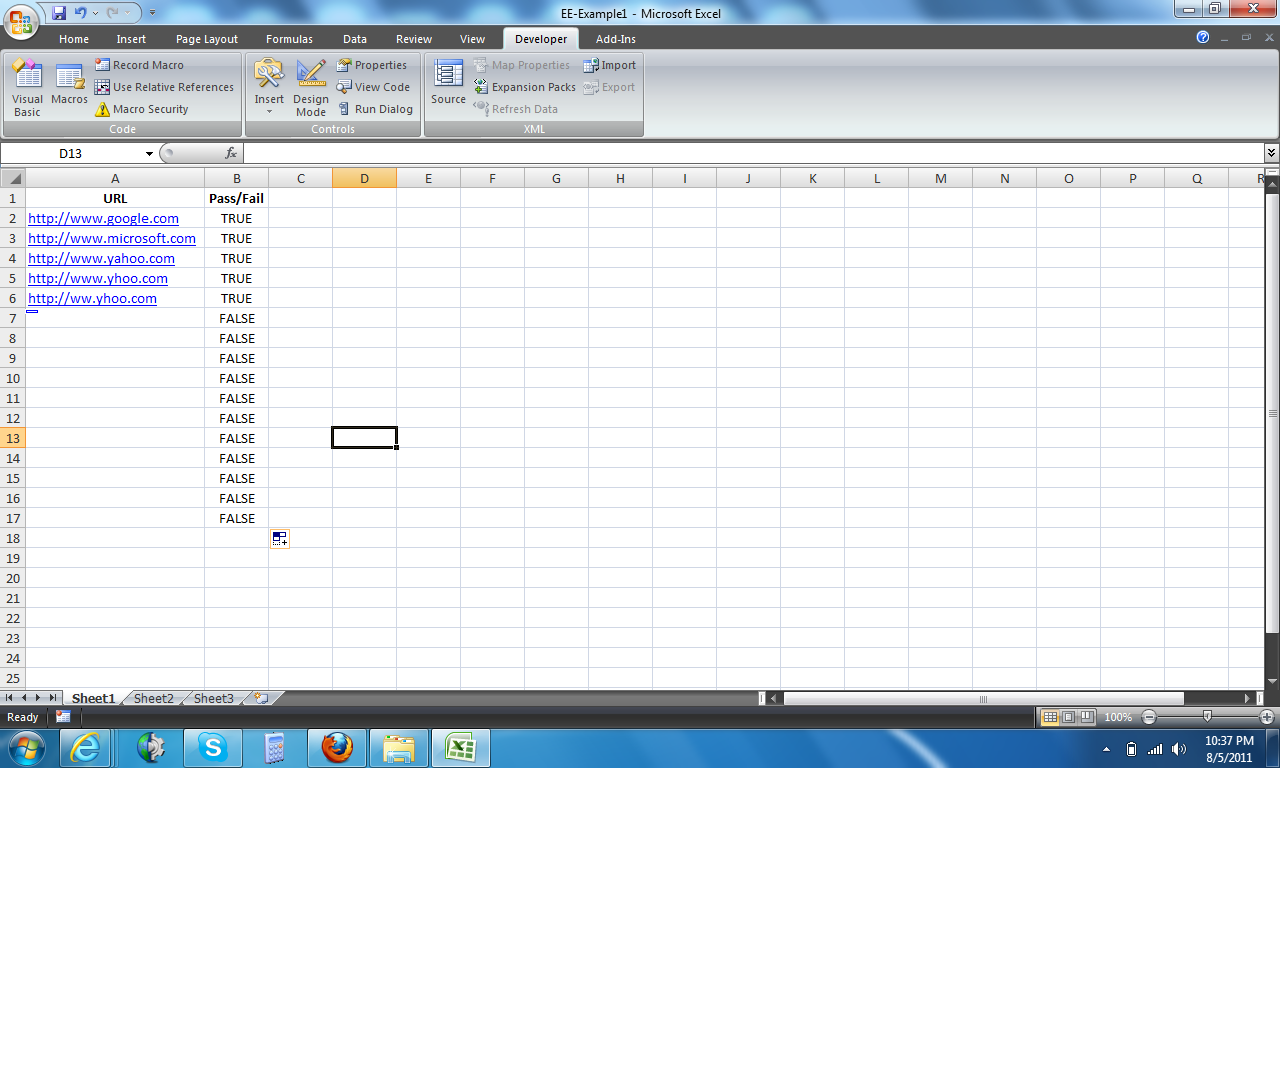 vba check URL if it is active or not